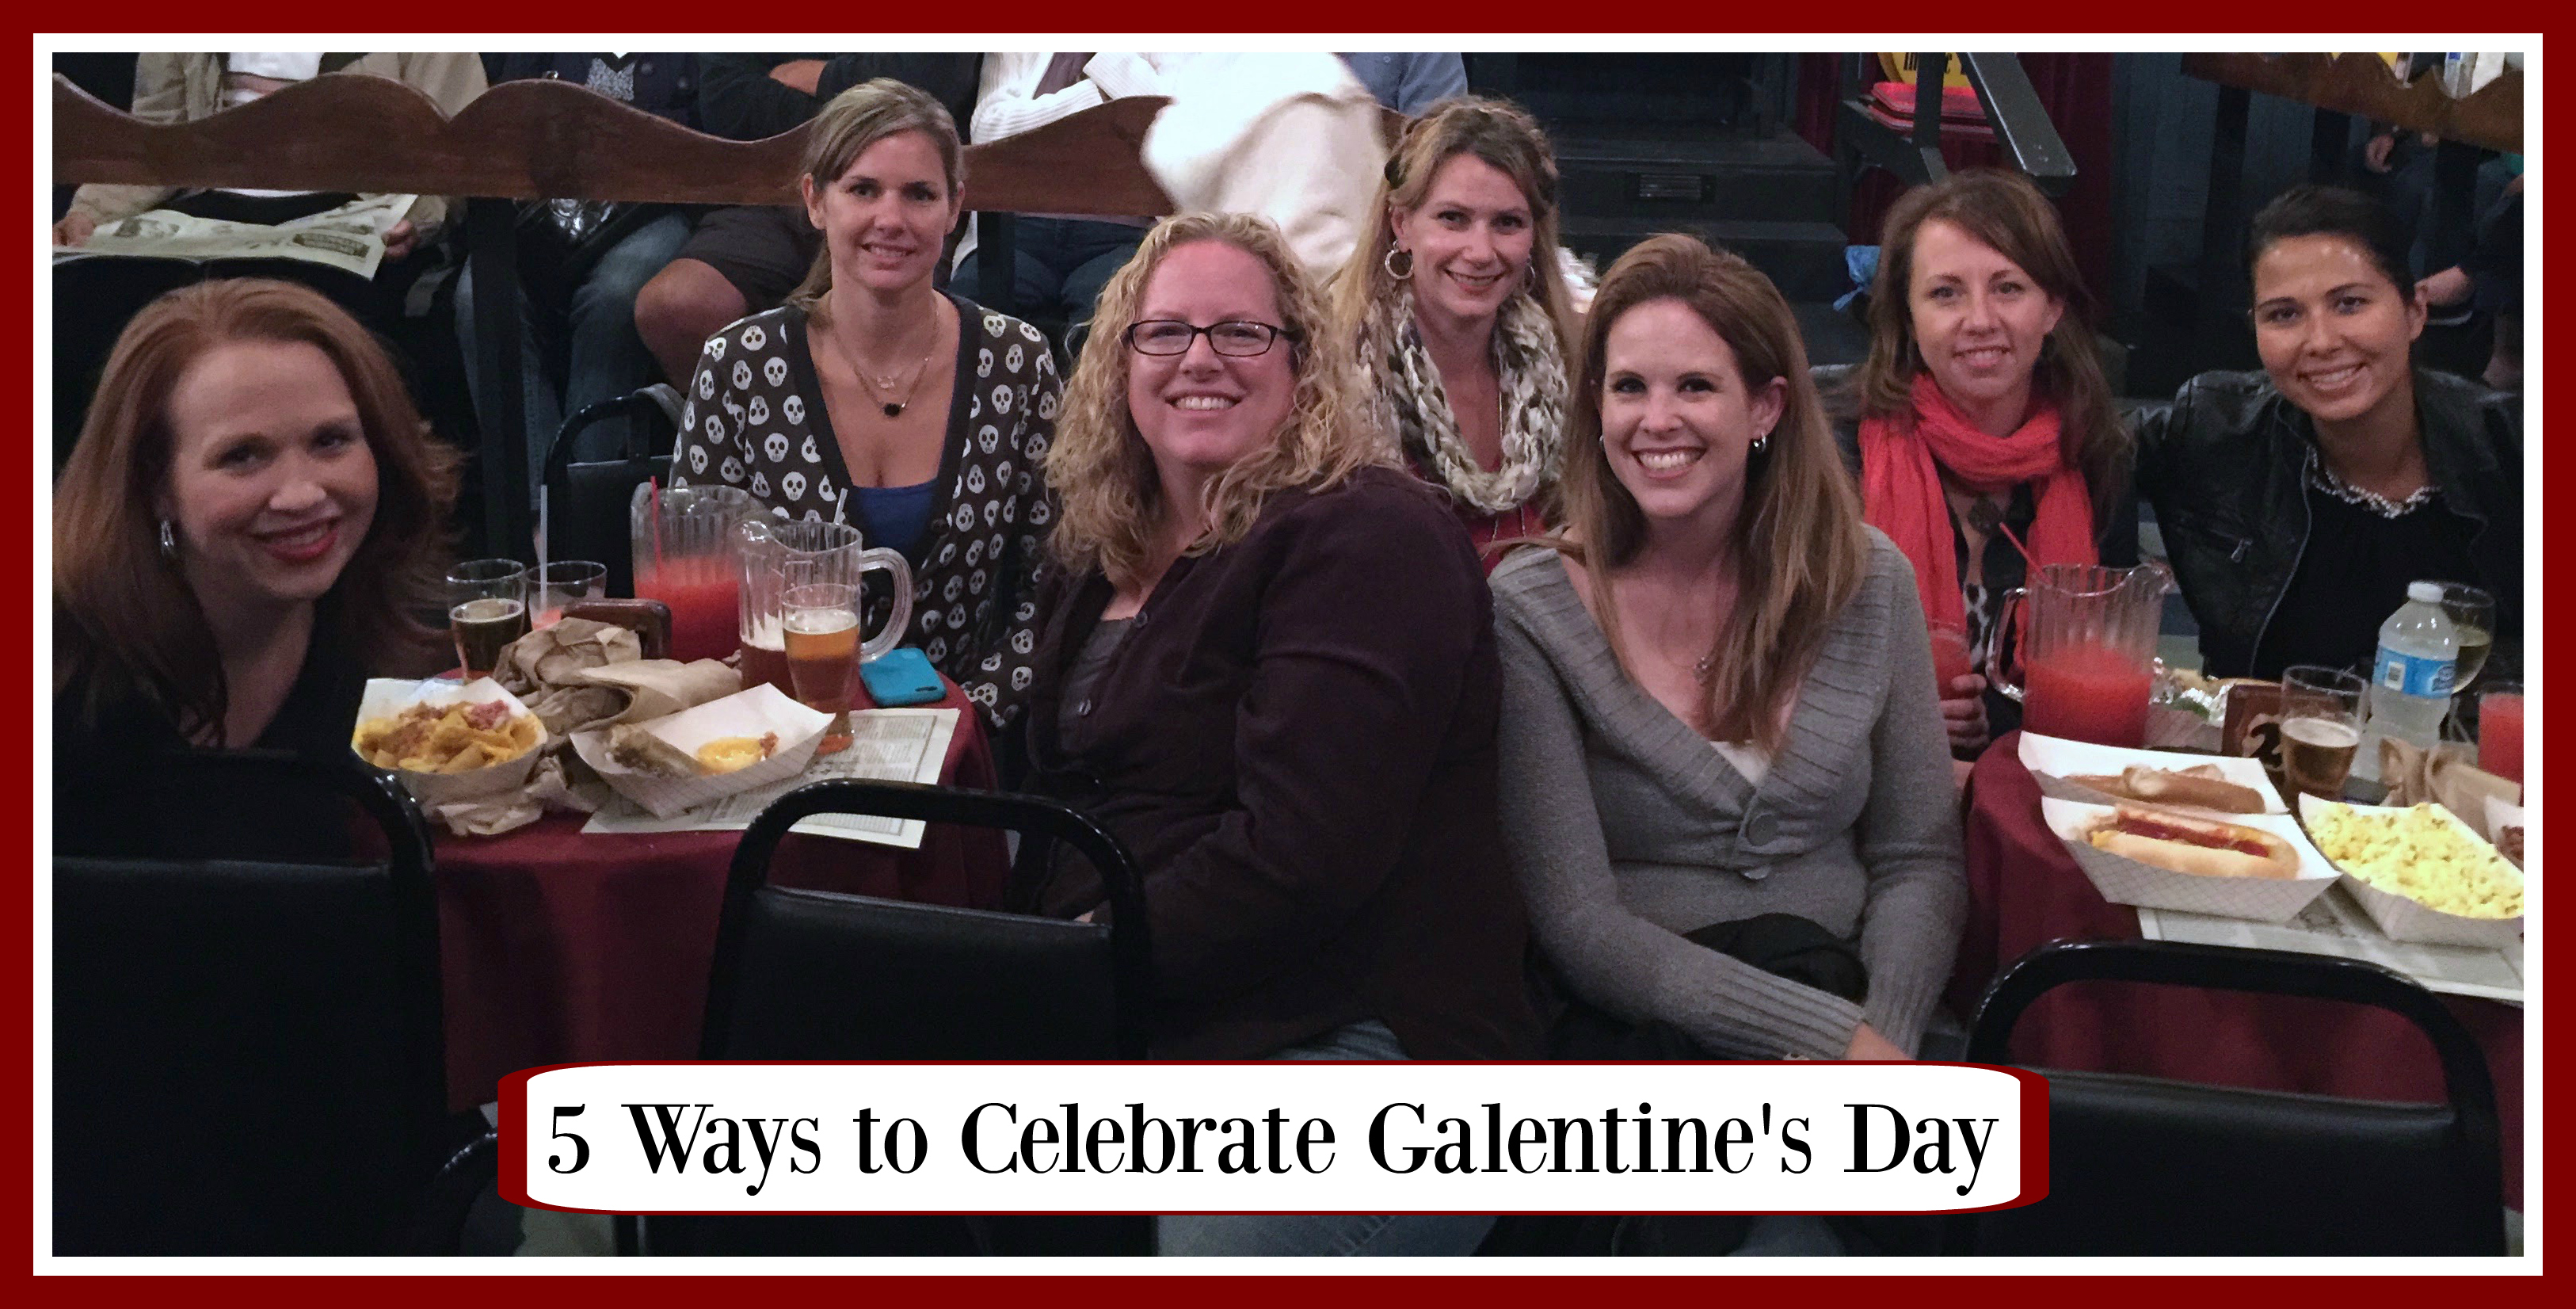 #GalentinesDay #GirlsNightOut #ad